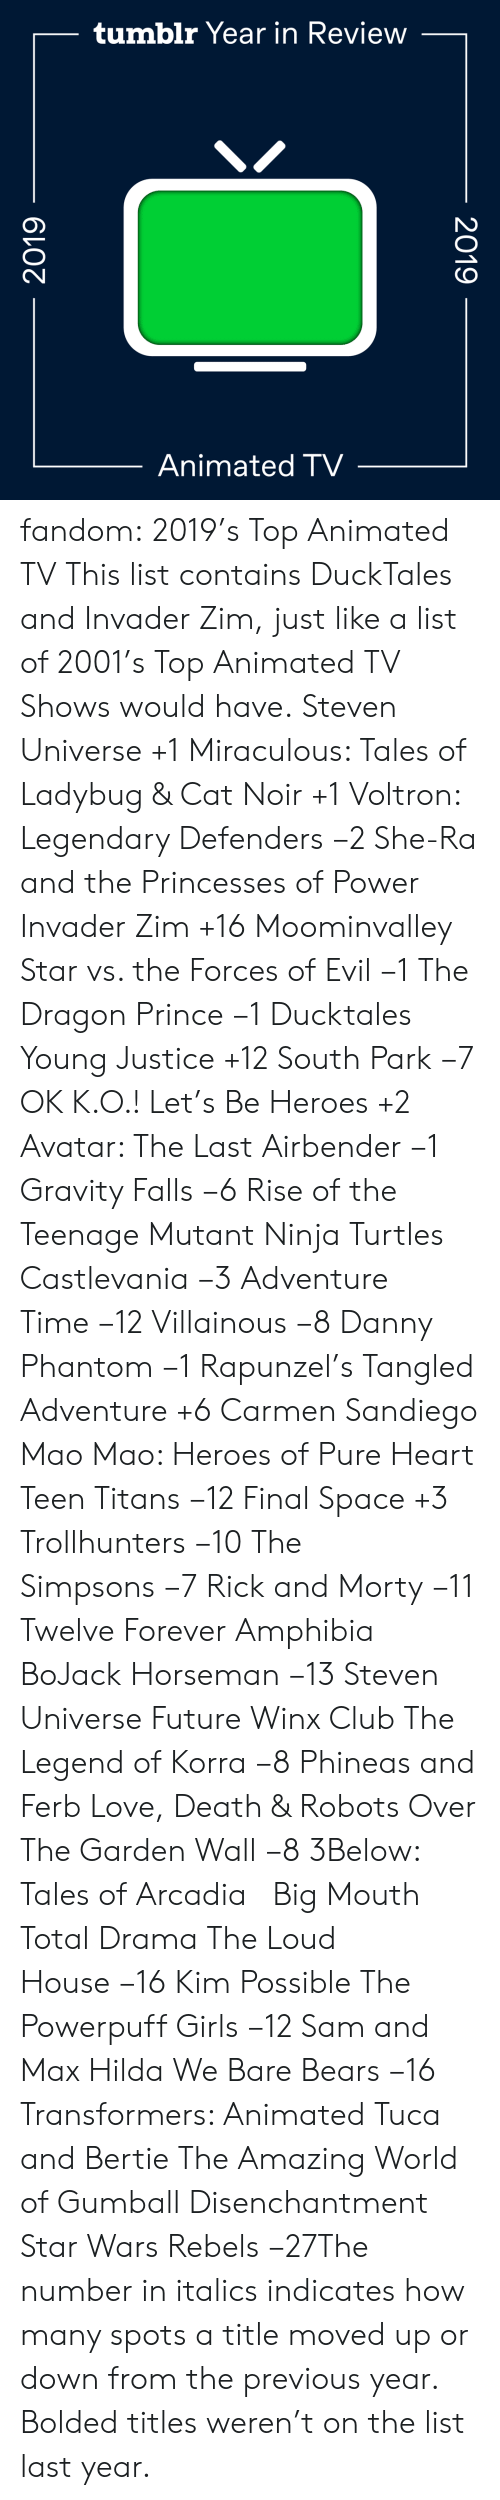 Defenders: tumblr Year in Review  Animated TV  2019  2019 fandom:  2019's Top Animated TV  This list contains DuckTales and Invader Zim, just like a list of 2001's Top Animated TV Shows would have.  Steven Universe +1  Miraculous: Tales of Ladybug & Cat Noir +1  Voltron: Legendary Defenders −2  She-Ra and the Princesses of Power   Invader Zim +16  Moominvalley  Star vs. the Forces of Evil −1  The Dragon Prince −1  Ducktales  Young Justice +12  South Park −7  OK K.O.! Let's Be Heroes +2  Avatar: The Last Airbender −1  Gravity Falls −6  Rise of the Teenage Mutant Ninja Turtles  Castlevania −3  Adventure Time −12  Villainous −8  Danny Phantom −1  Rapunzel's Tangled Adventure +6  Carmen Sandiego  Mao Mao: Heroes of Pure Heart  Teen Titans −12  Final Space +3  Trollhunters −10  The Simpsons −7  Rick and Morty −11  Twelve Forever  Amphibia  BoJack Horseman −13  Steven Universe Future  Winx Club  The Legend of Korra −8  Phineas and Ferb  Love, Death & Robots  Over The Garden Wall −8  3Below: Tales of Arcadia    Big Mouth  Total Drama  The Loud House −16  Kim Possible  The Powerpuff Girls −12  Sam and Max  Hilda  We Bare Bears −16  Transformers: Animated  Tuca and Bertie  The Amazing World of Gumball  Disenchantment Star Wars Rebels −27The number in italics indicates how many spots a title moved up or down from the previous year. Bolded titles weren't on the list last year.